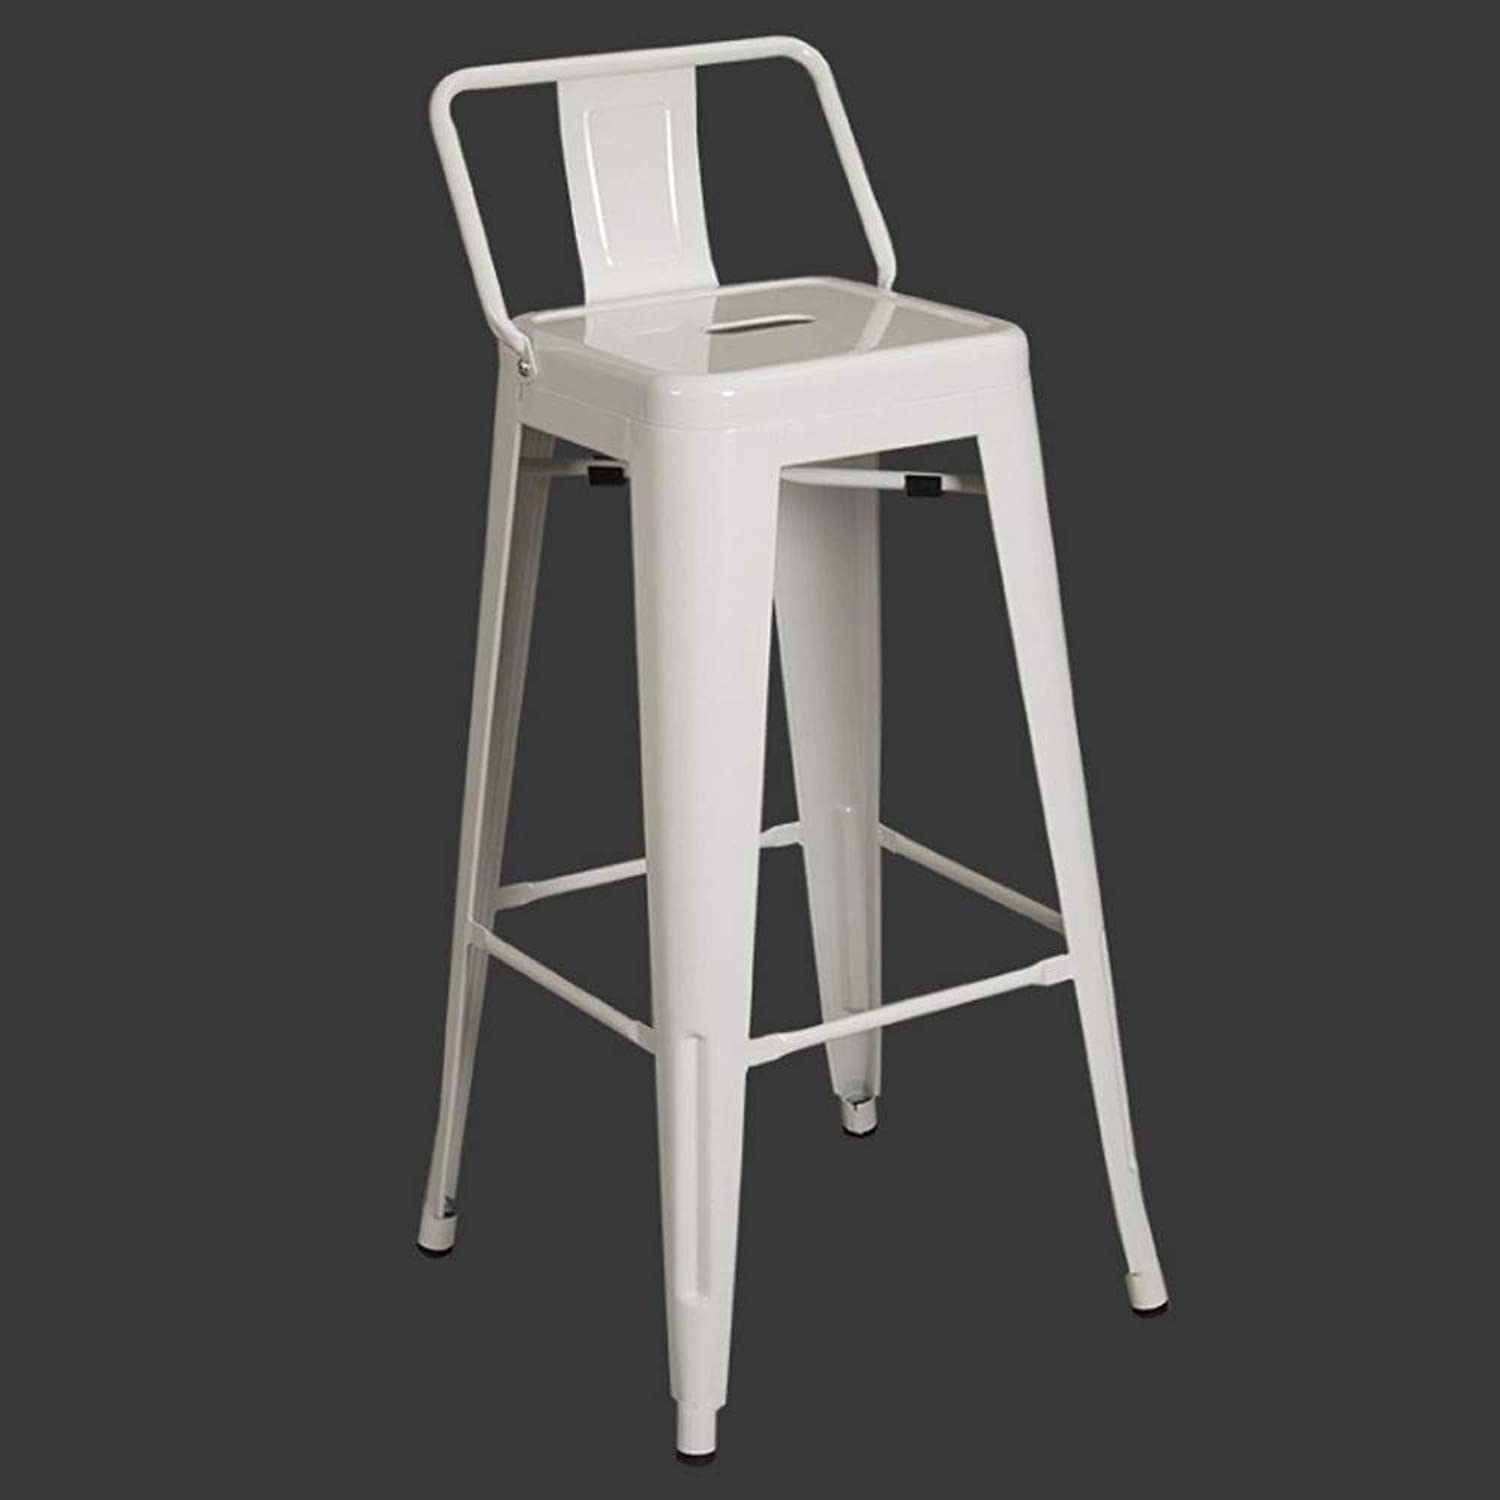 Bar stools Breakfast Bar Stool Kitchen Bistro Cafe Vintage - No Assembly Required(White) Height Chair